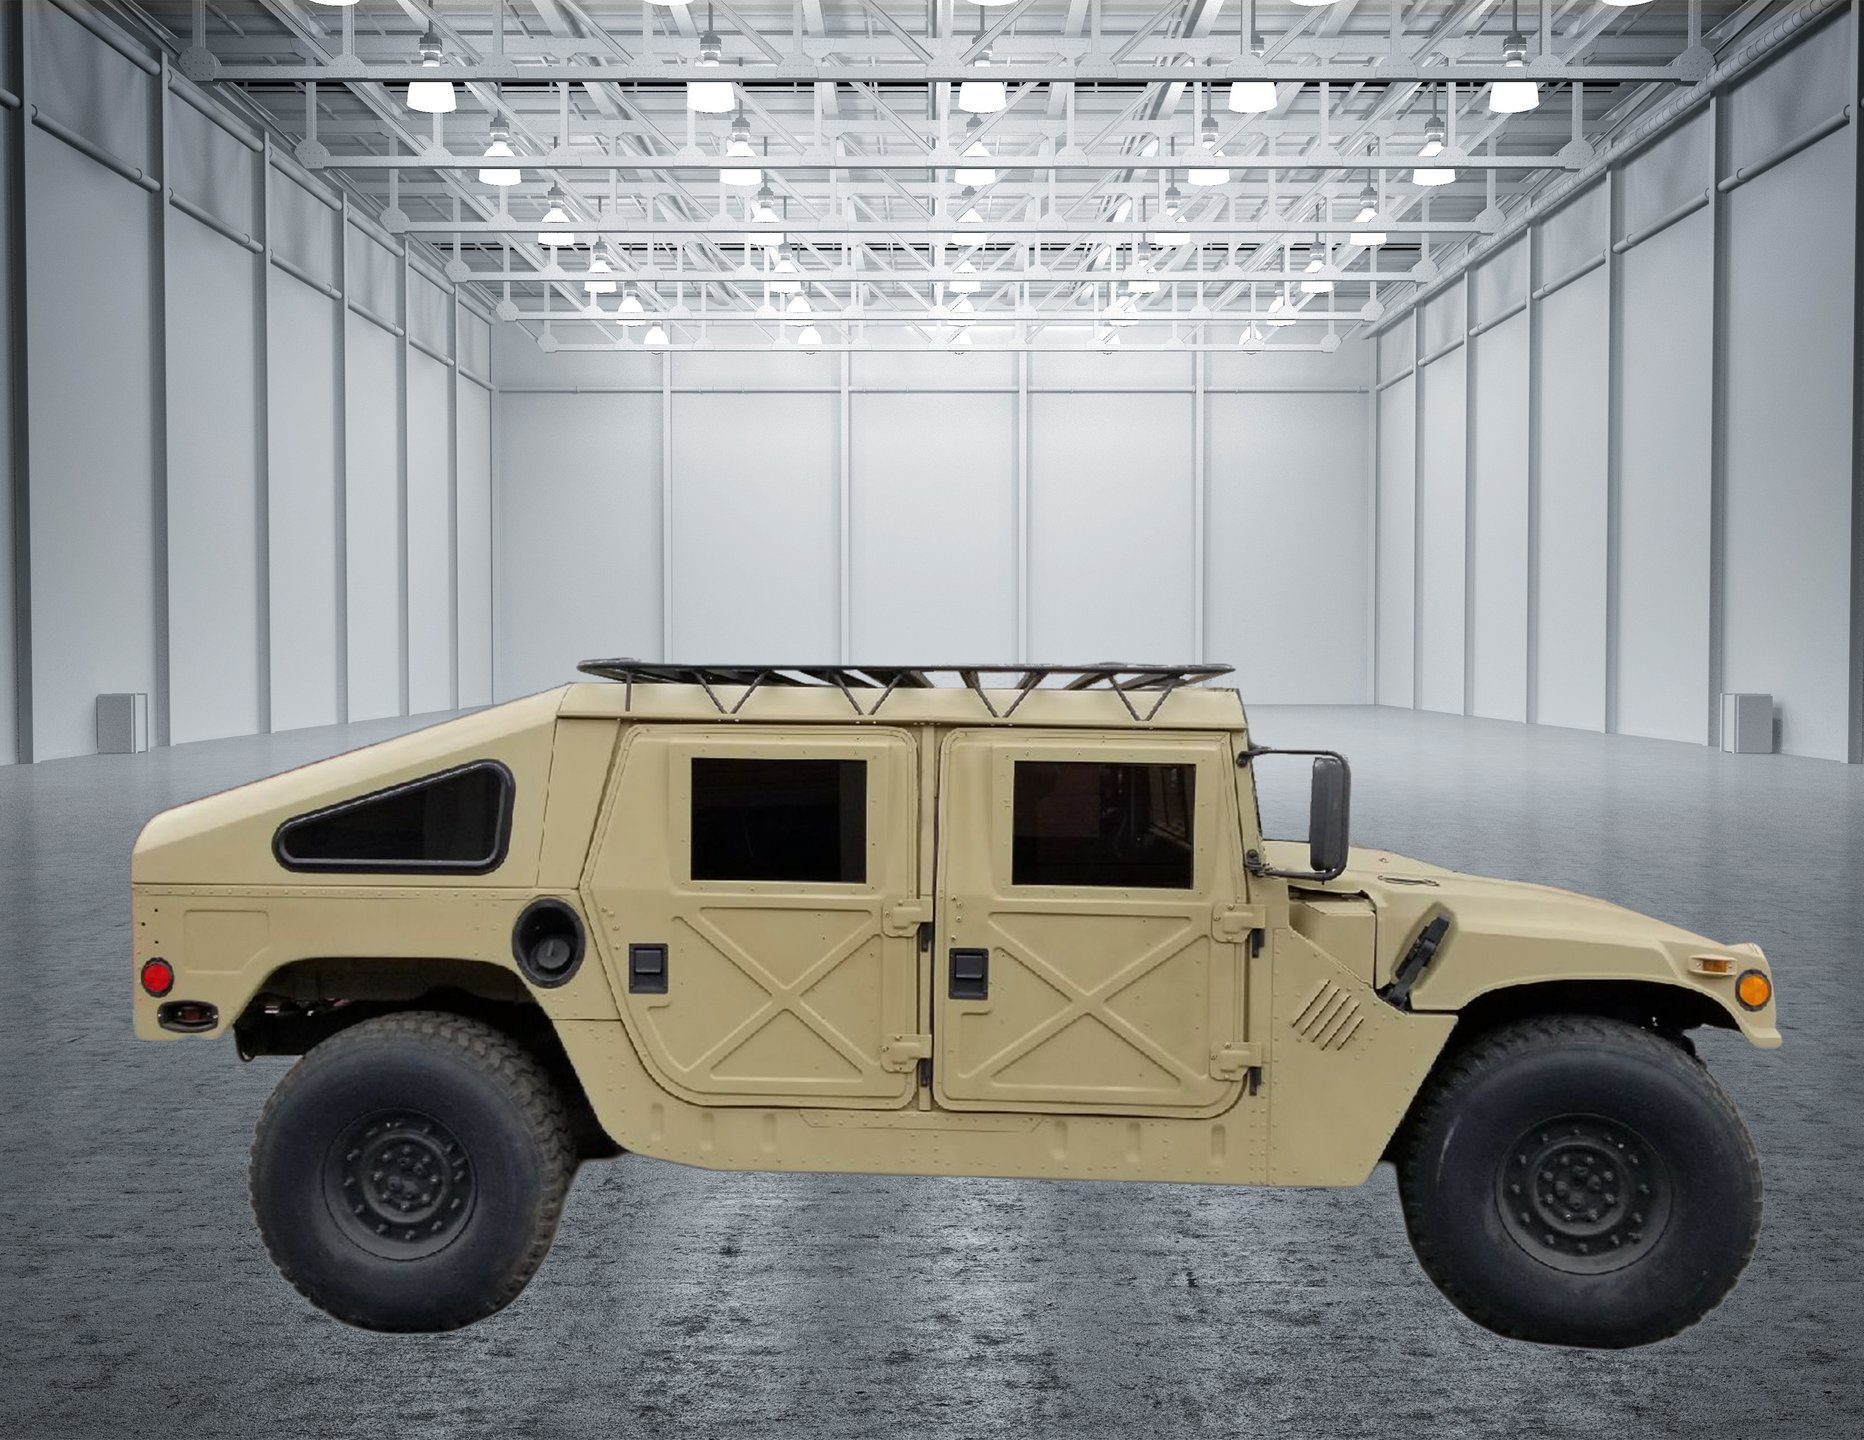 1992 am general humvee m998 slantback